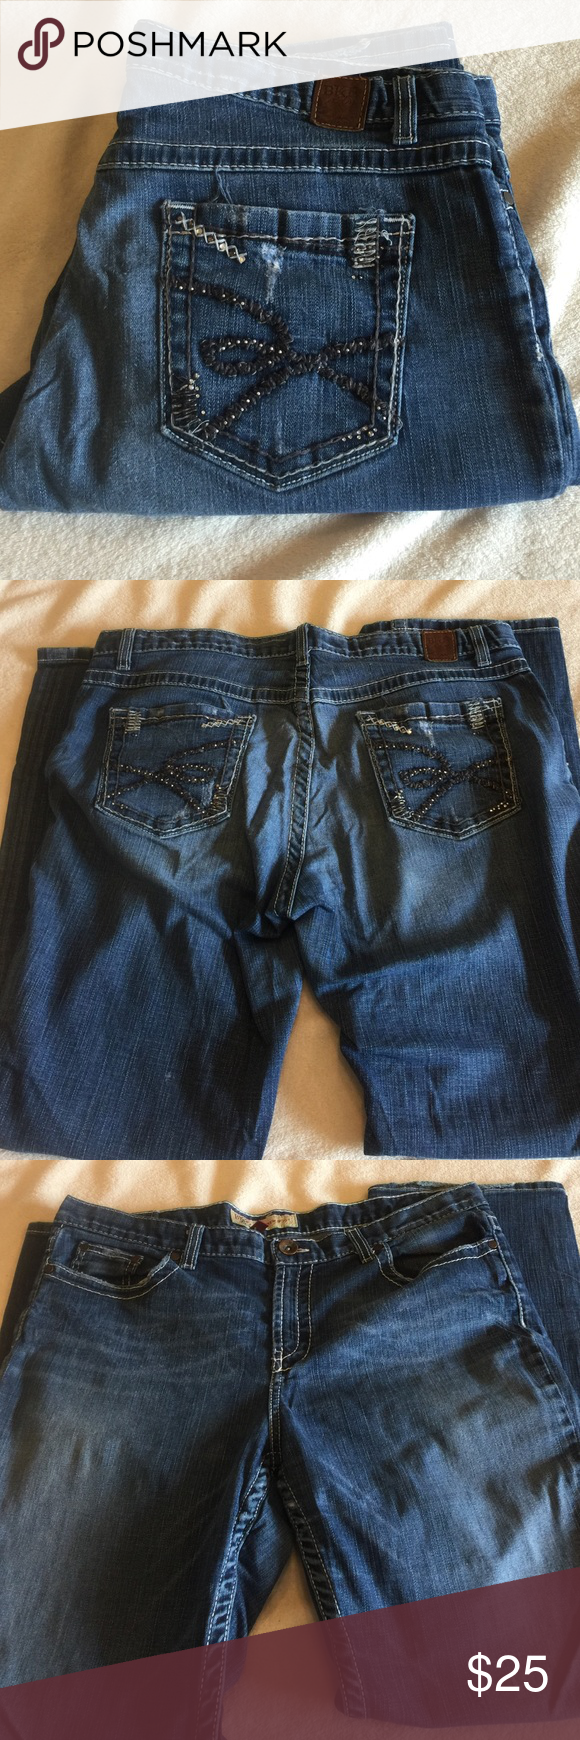 Buckle BKE Drew bootcut jeans (sold) | Buckle jeans and Jeans size